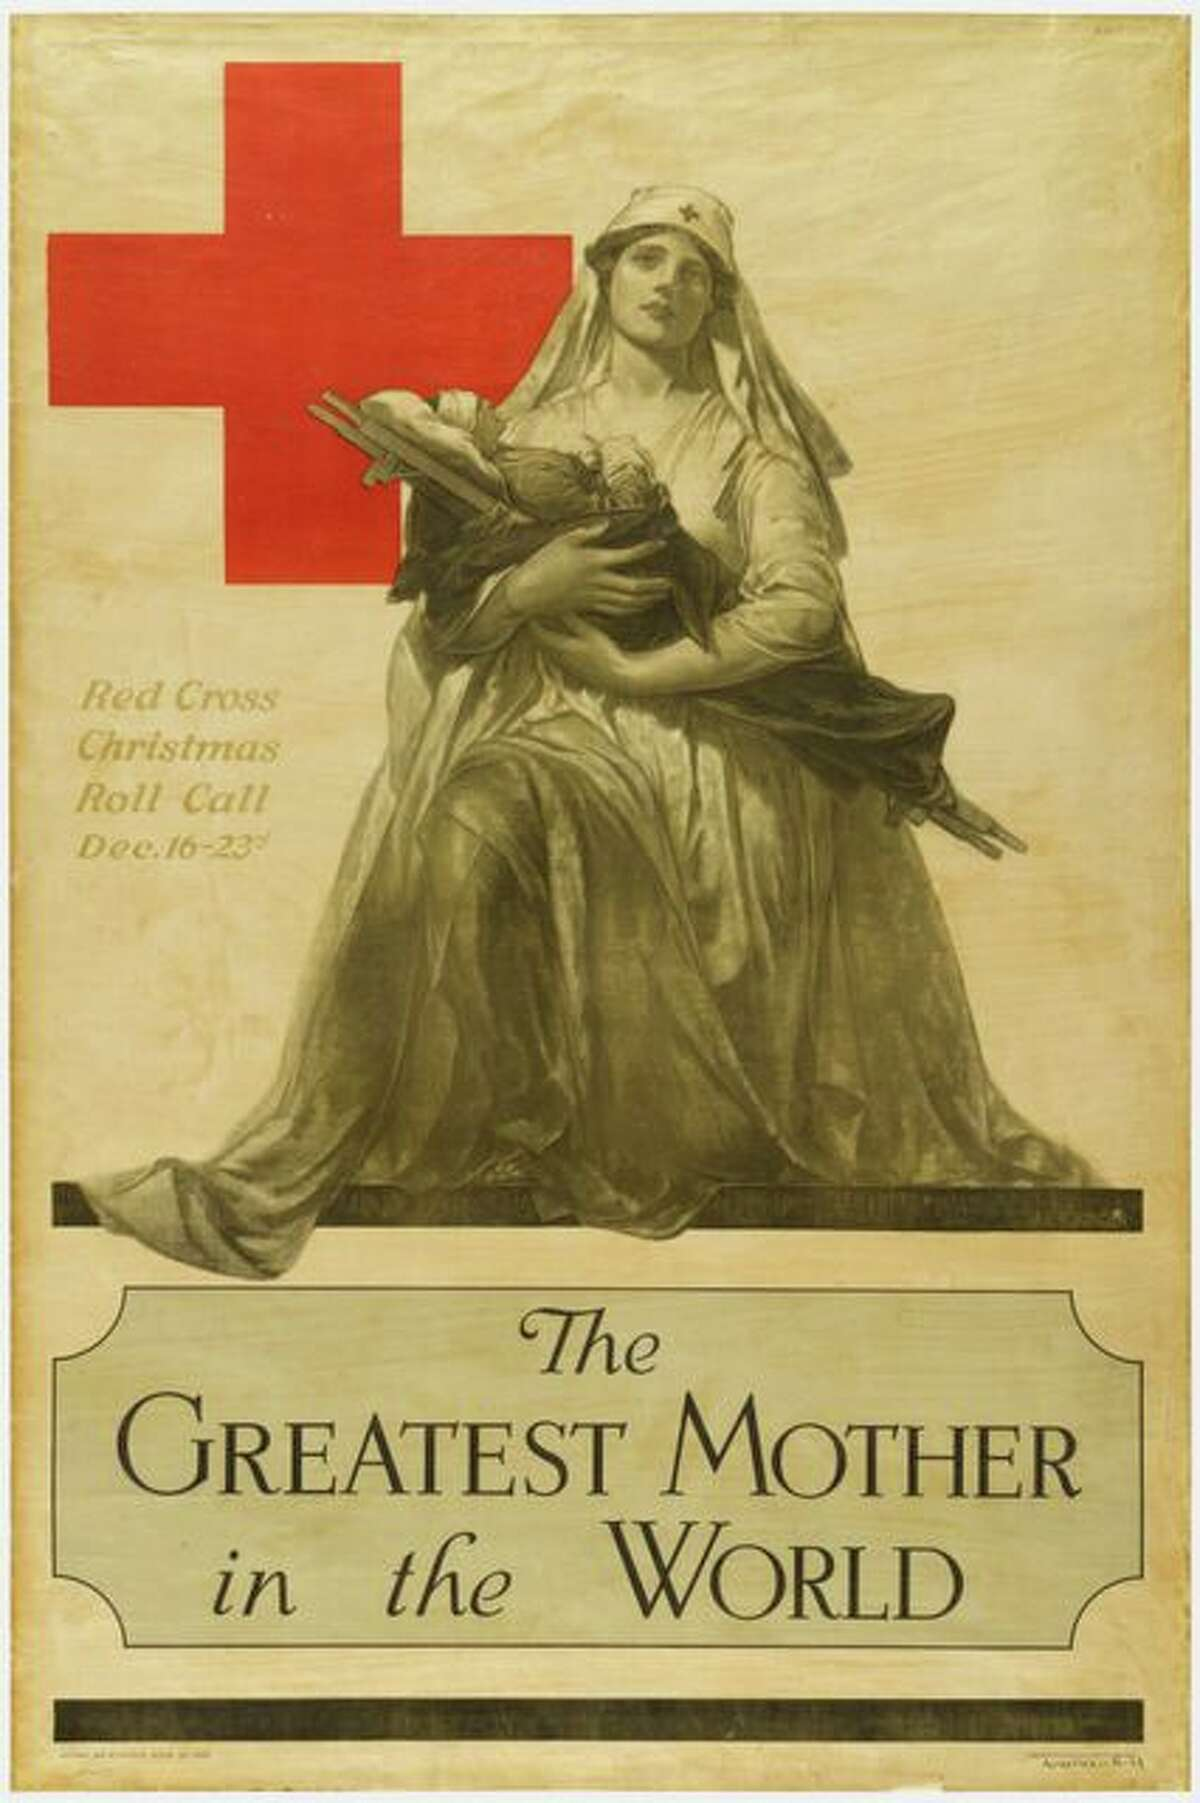 Poster designed by A.E. Foringer for the Red Cross from 1918.